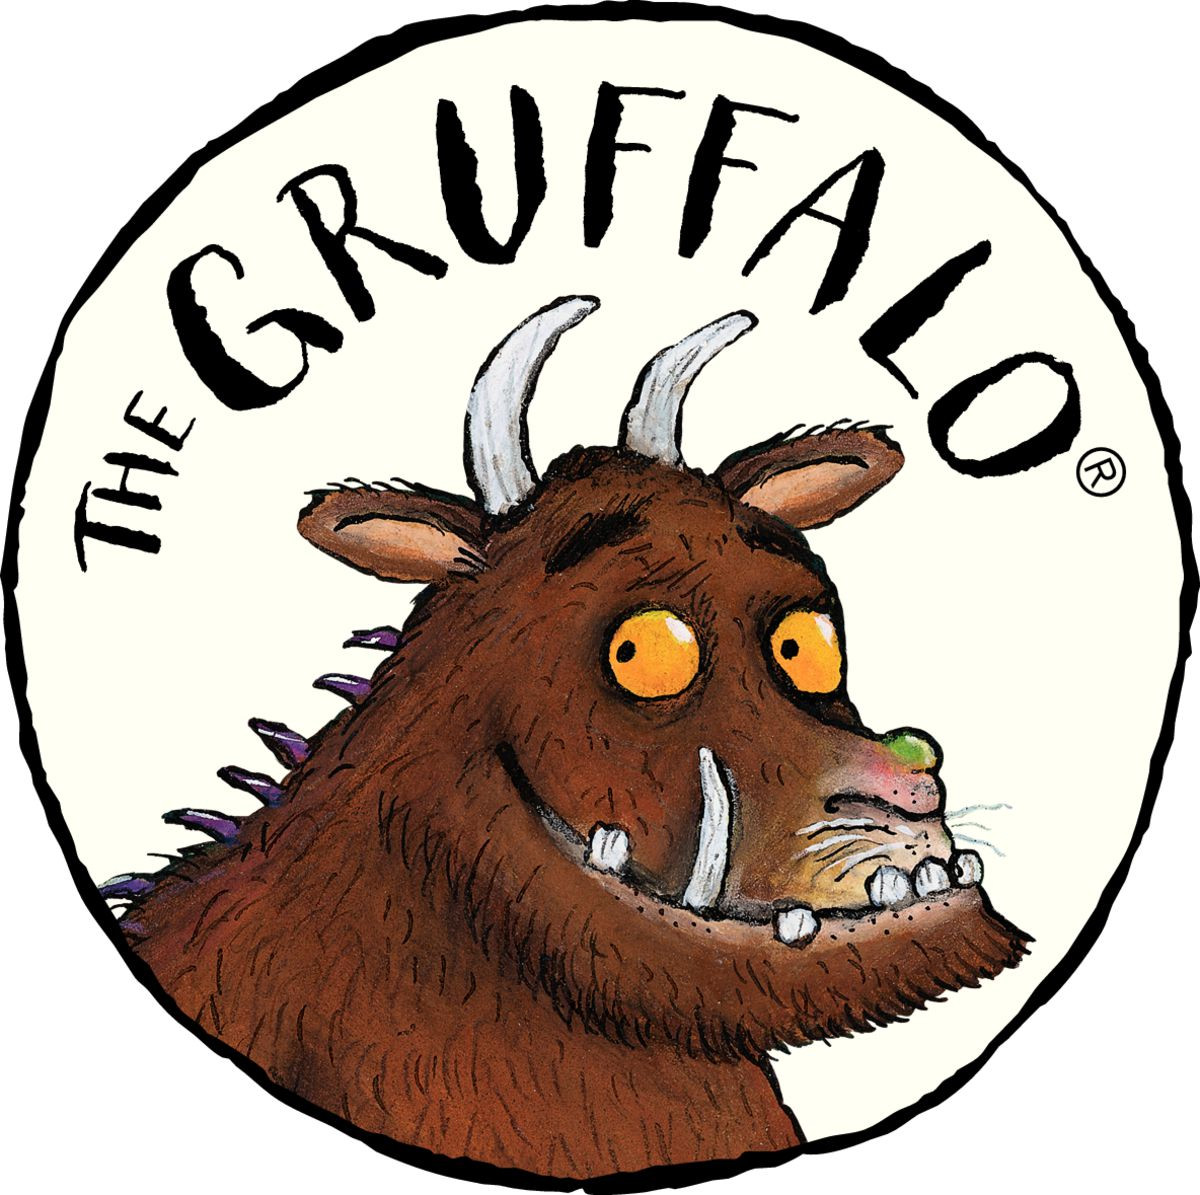 gruffalo cut out characters gresswell specialist border clipart for word border clip art free